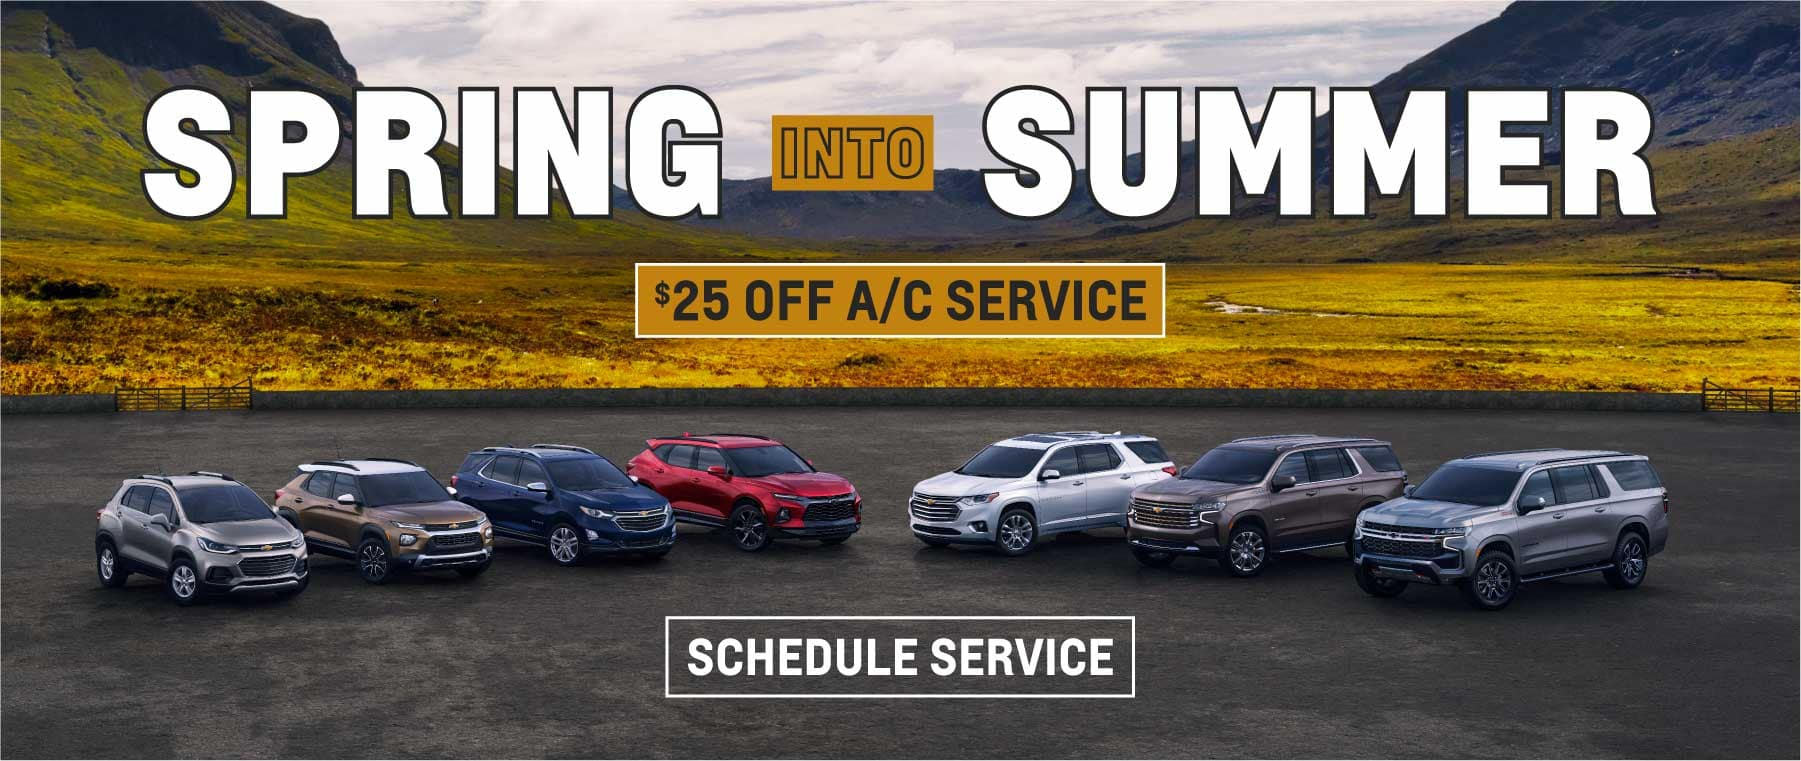 Spring into Summer, $25 off A/C Service